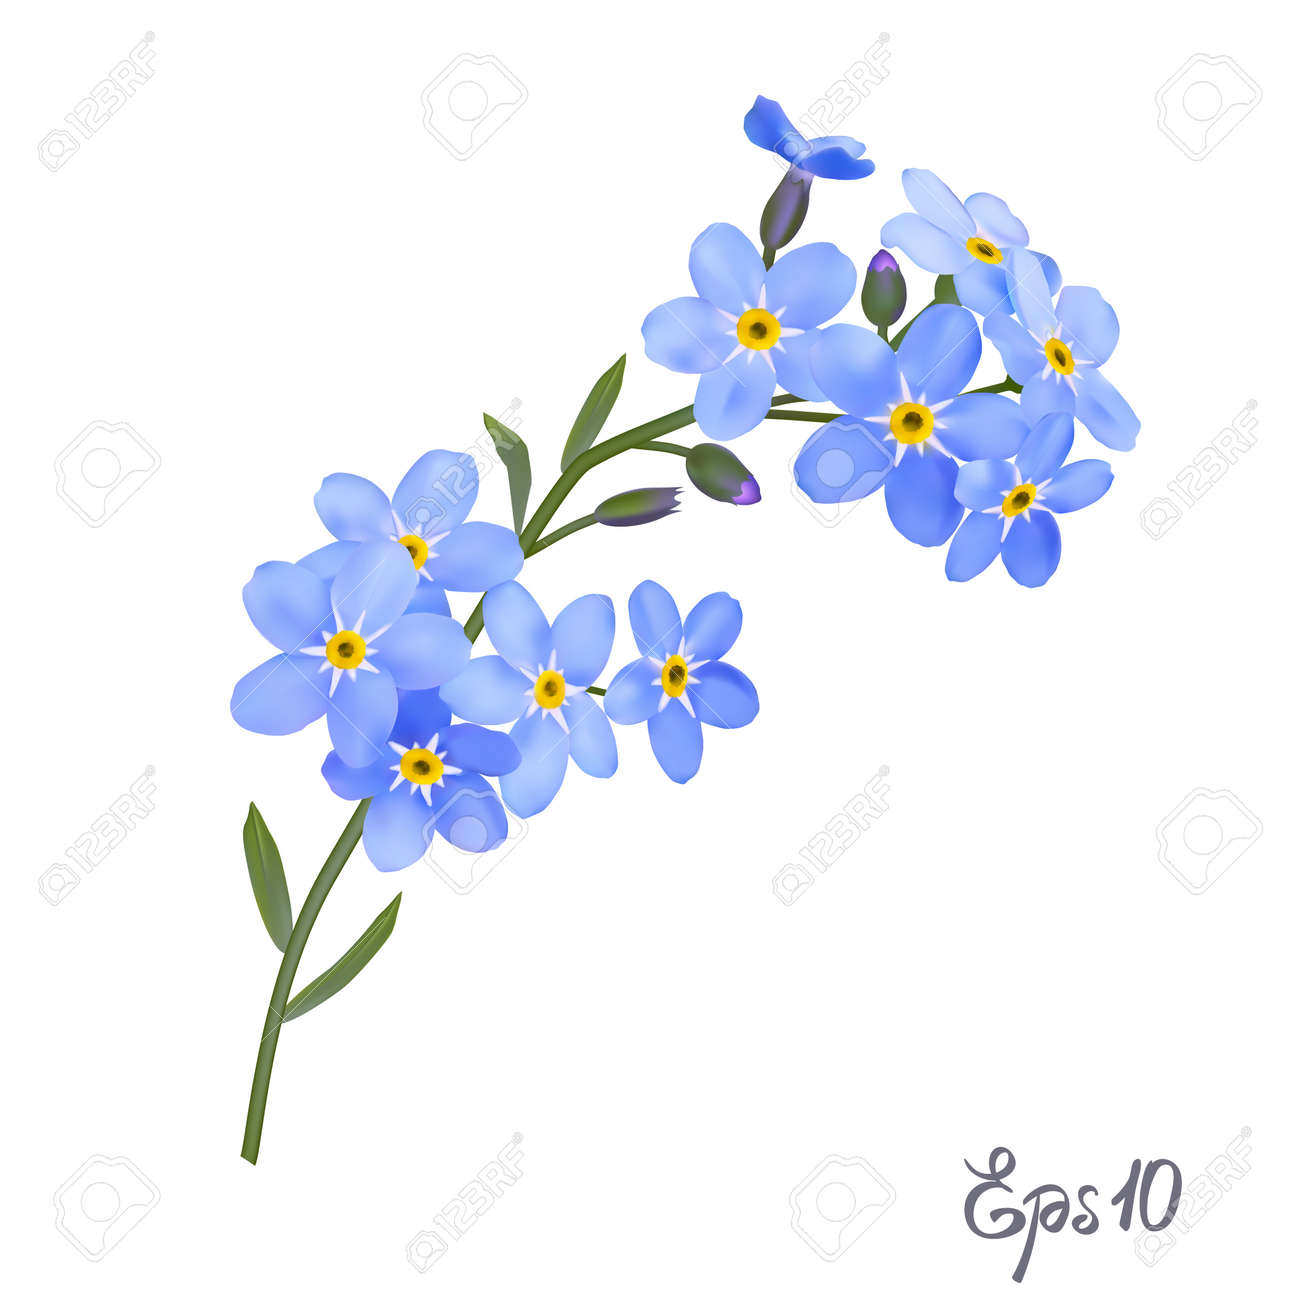 Branch Of Blue Forget Me Not Flowers Isolated On White Background